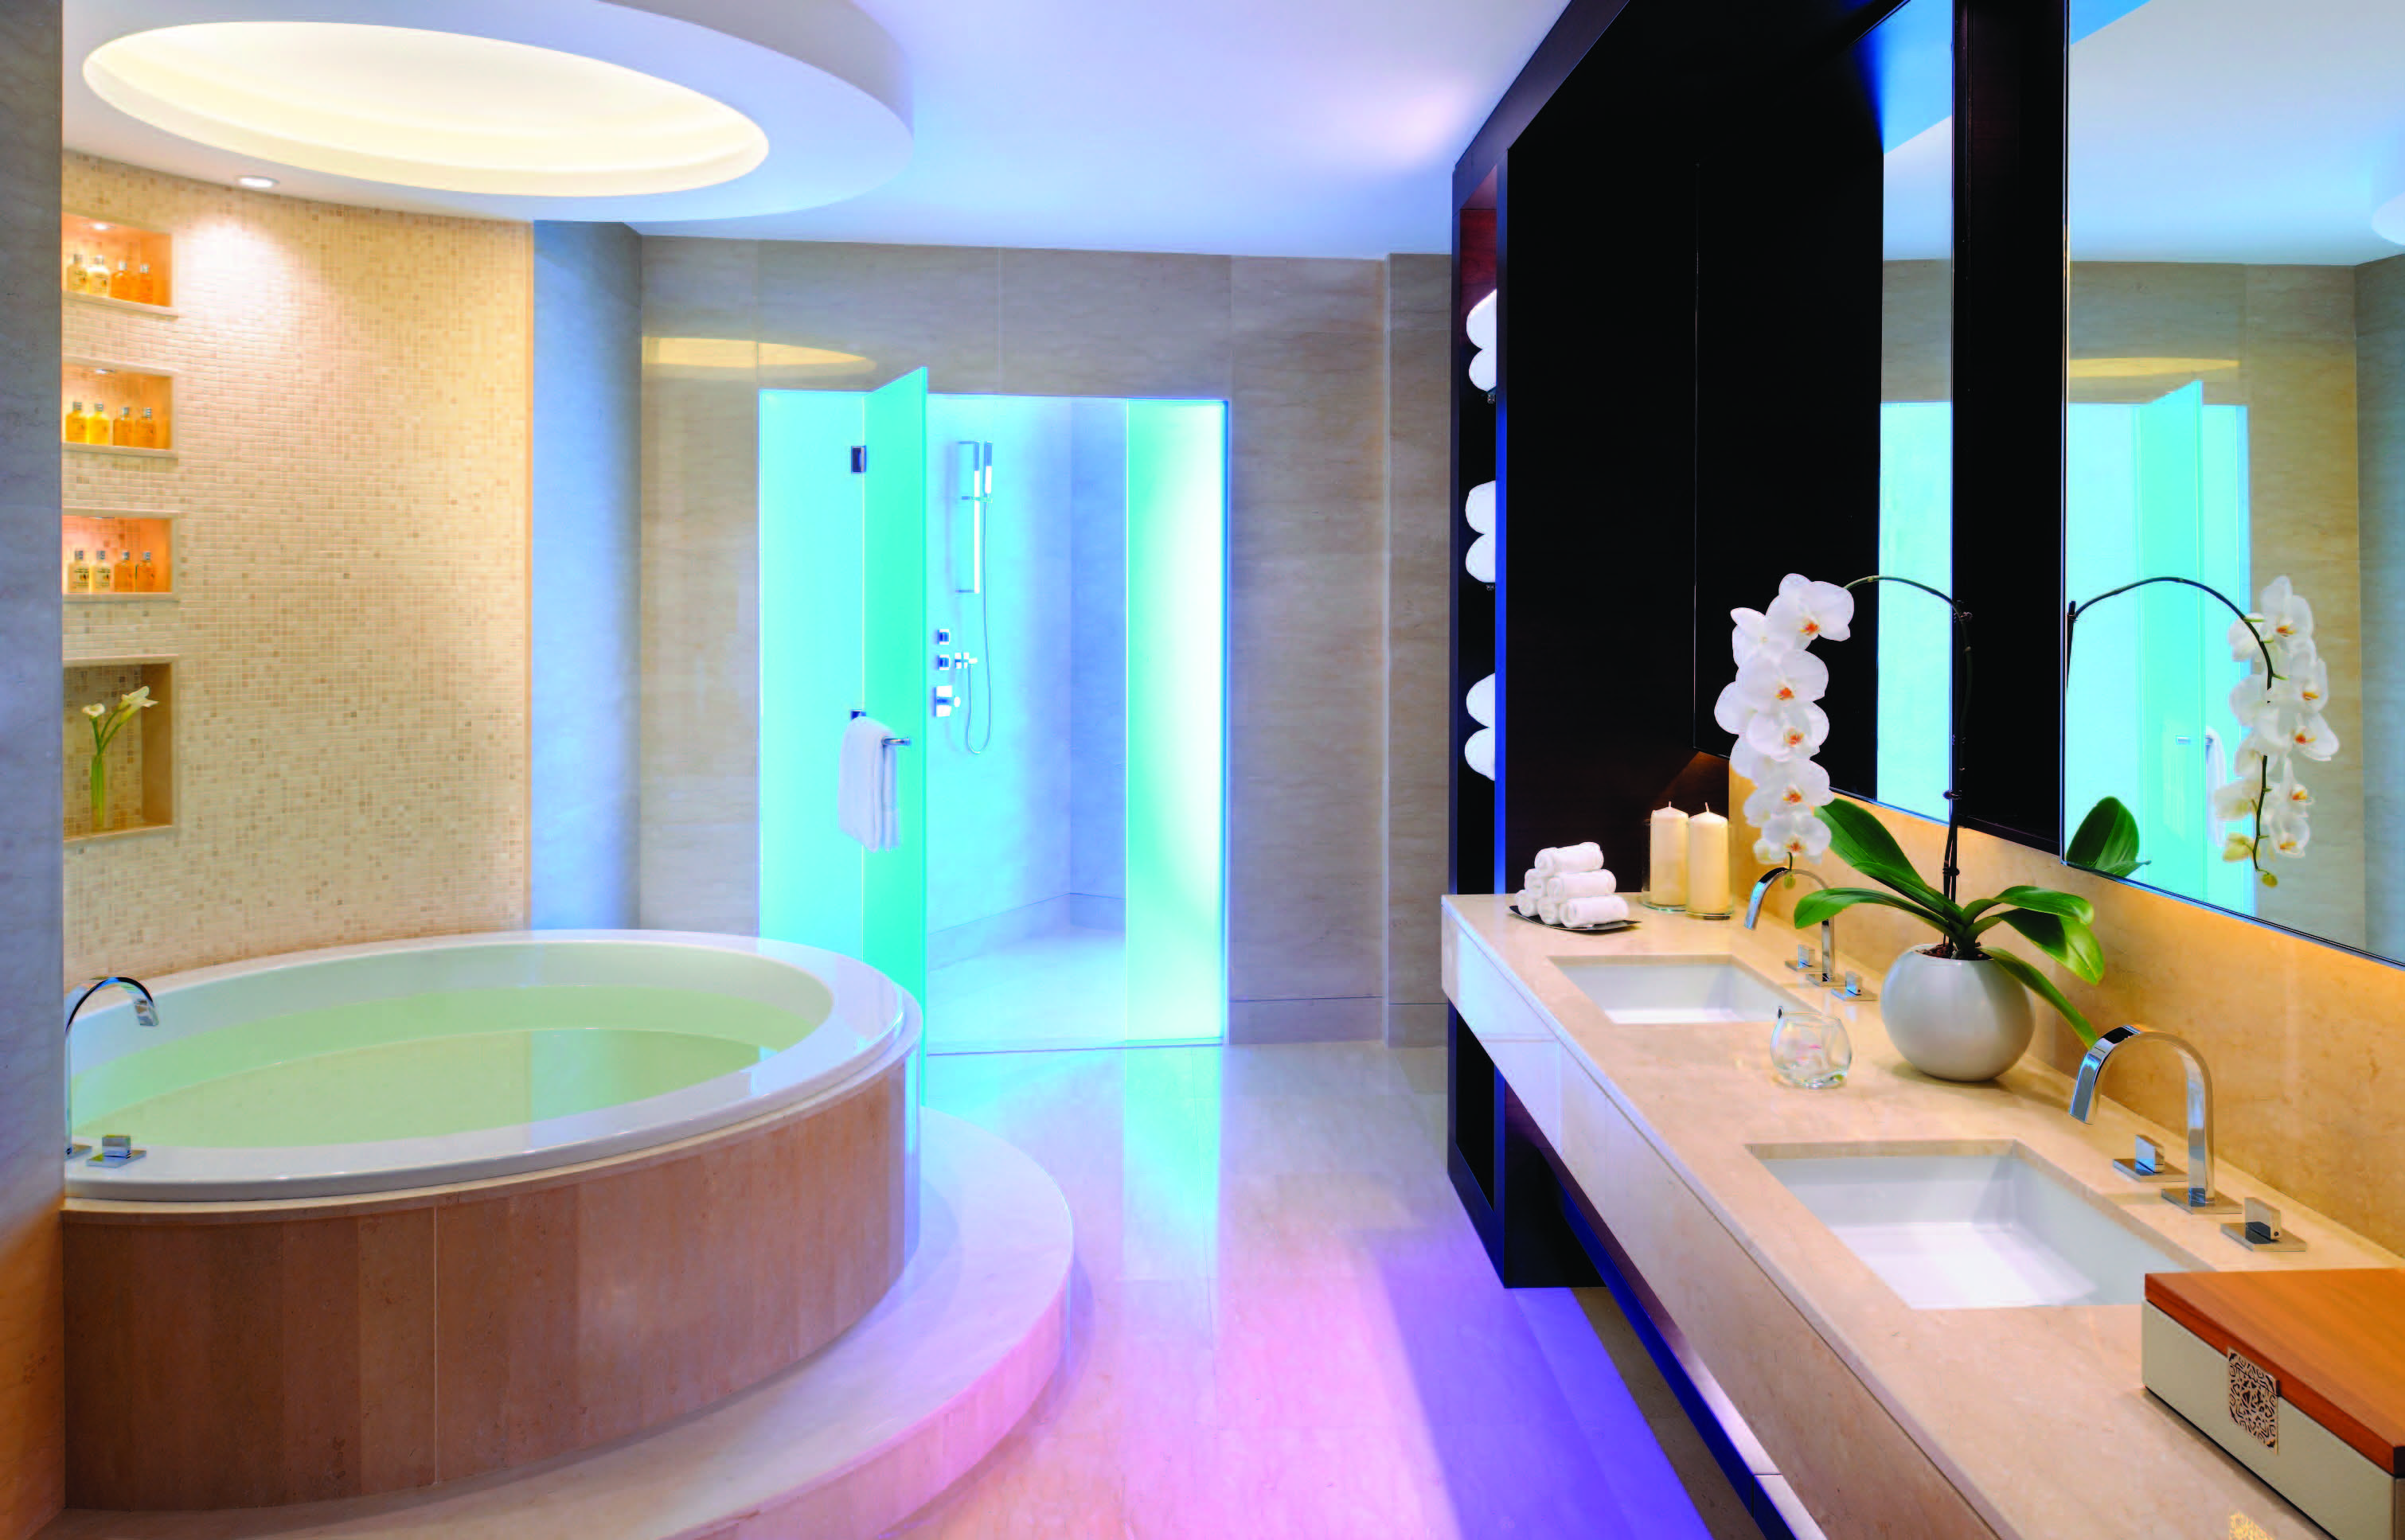 Luxury Bathrooms In Hotels http://www.bagnodesign/news/luxury-bathroom-design-on-a-record